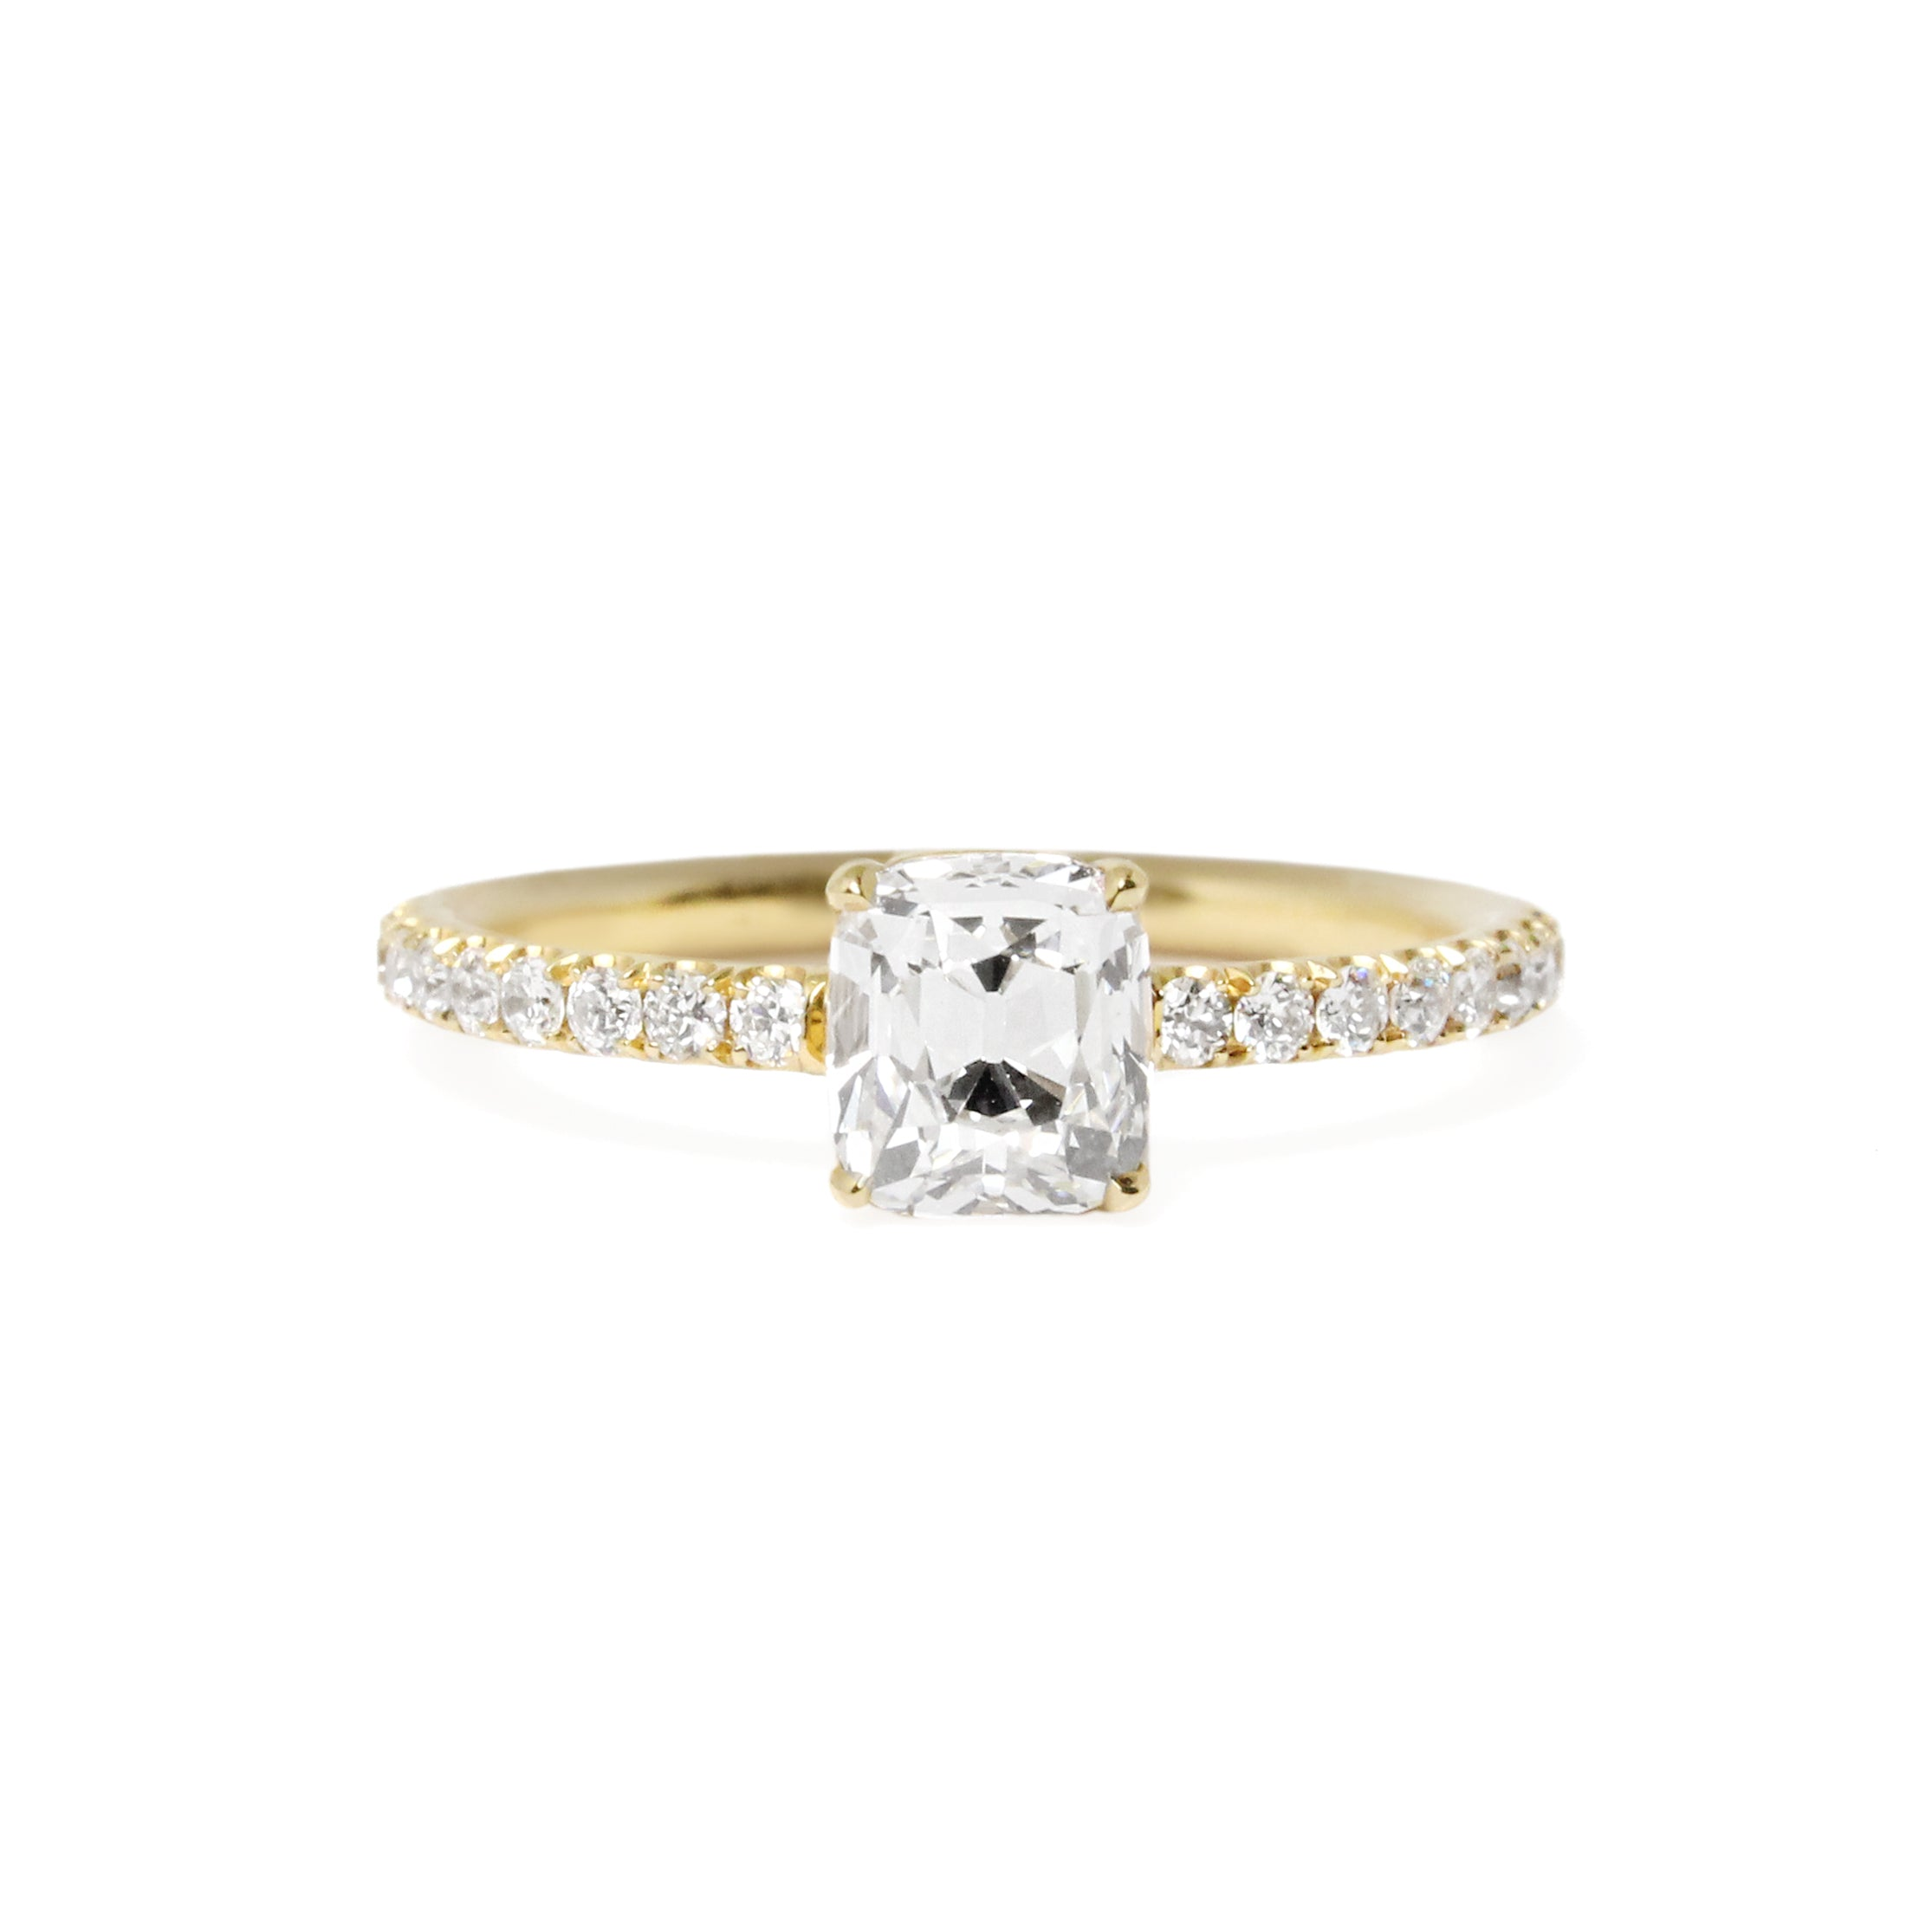 one of a kind cushion-cut diamond ring